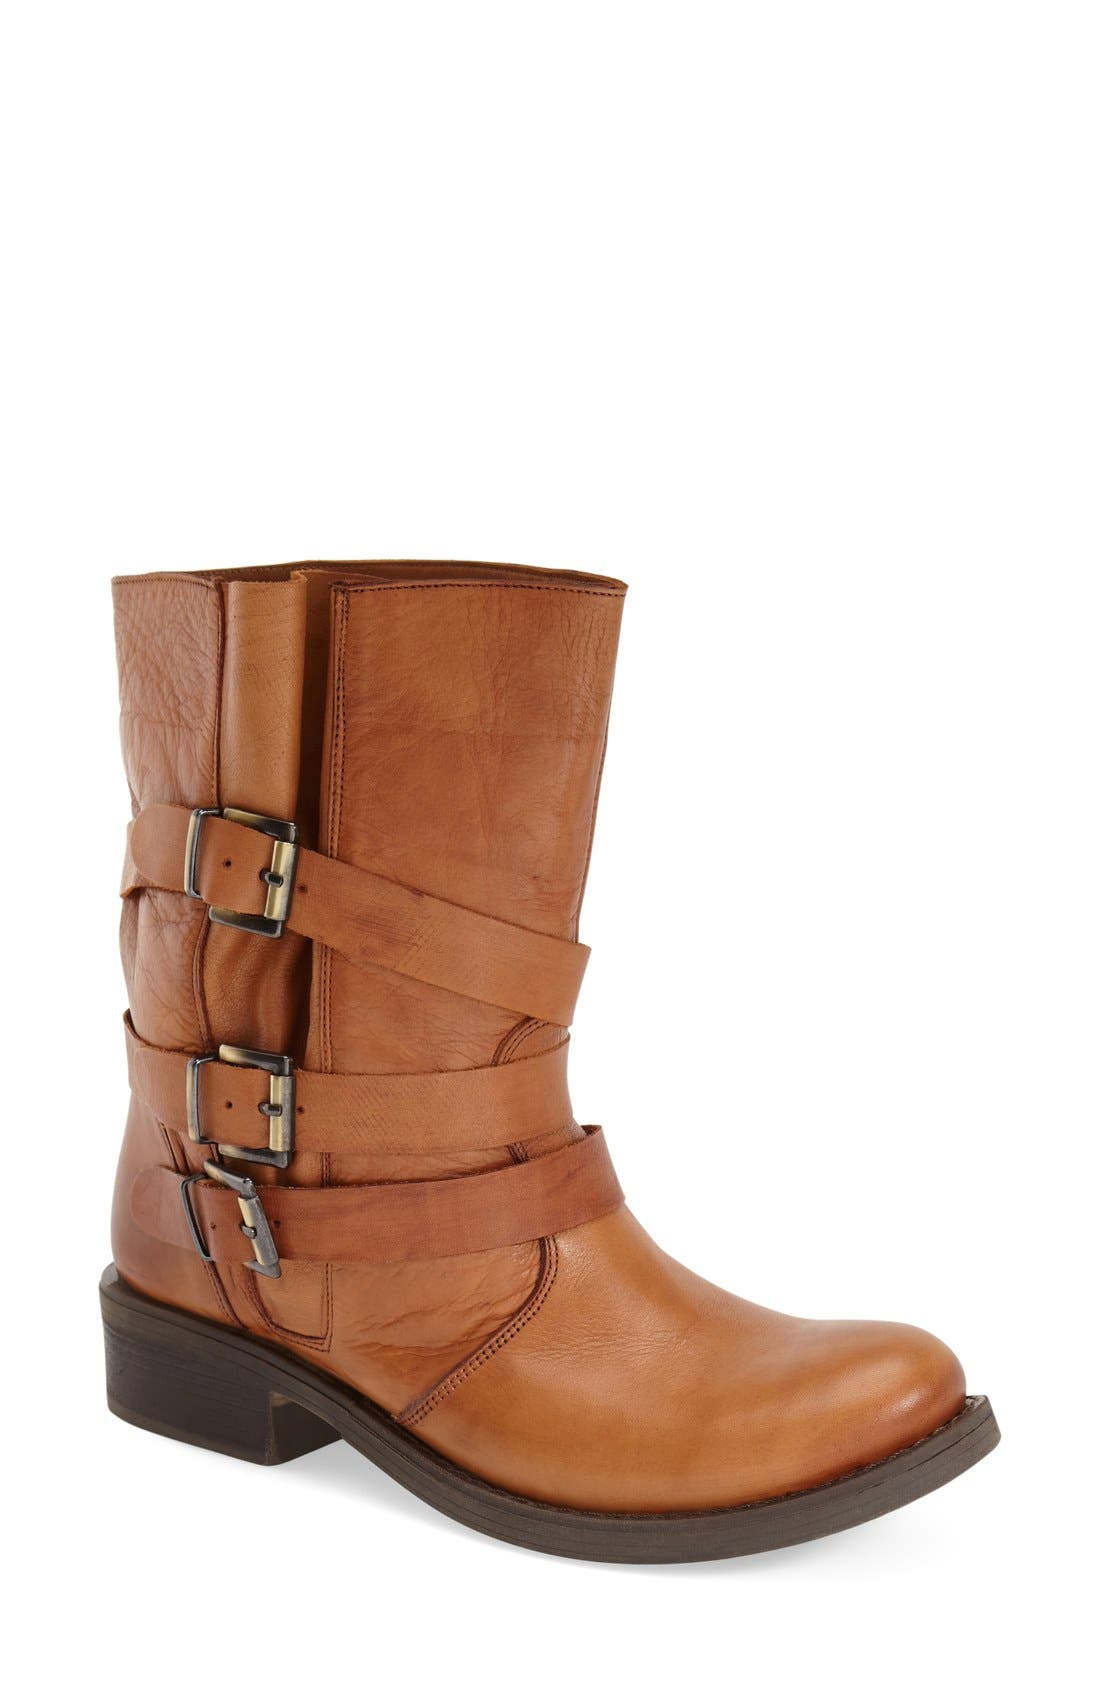 Main Image - Miz Mooz 'Clang' Leather Moto Bootie (Women)